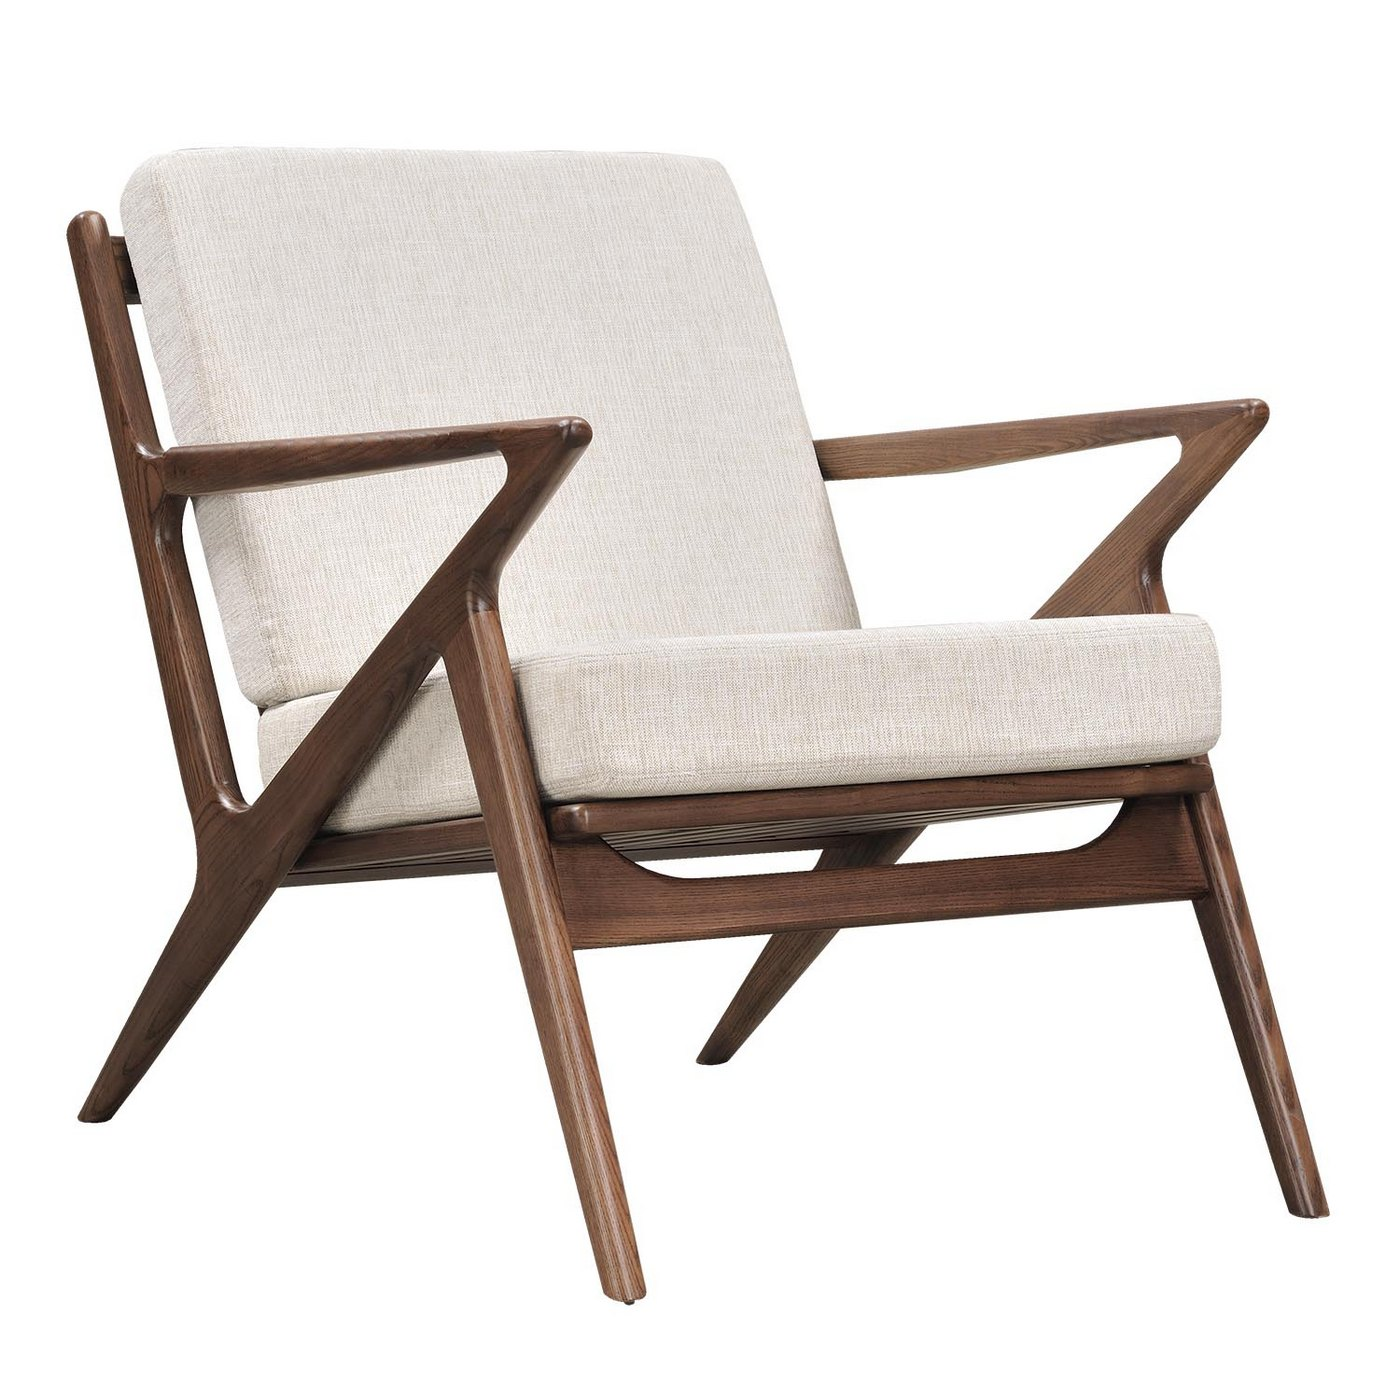 Zain mid century modern beige fabric chair with wooden for Contemporary seating chairs